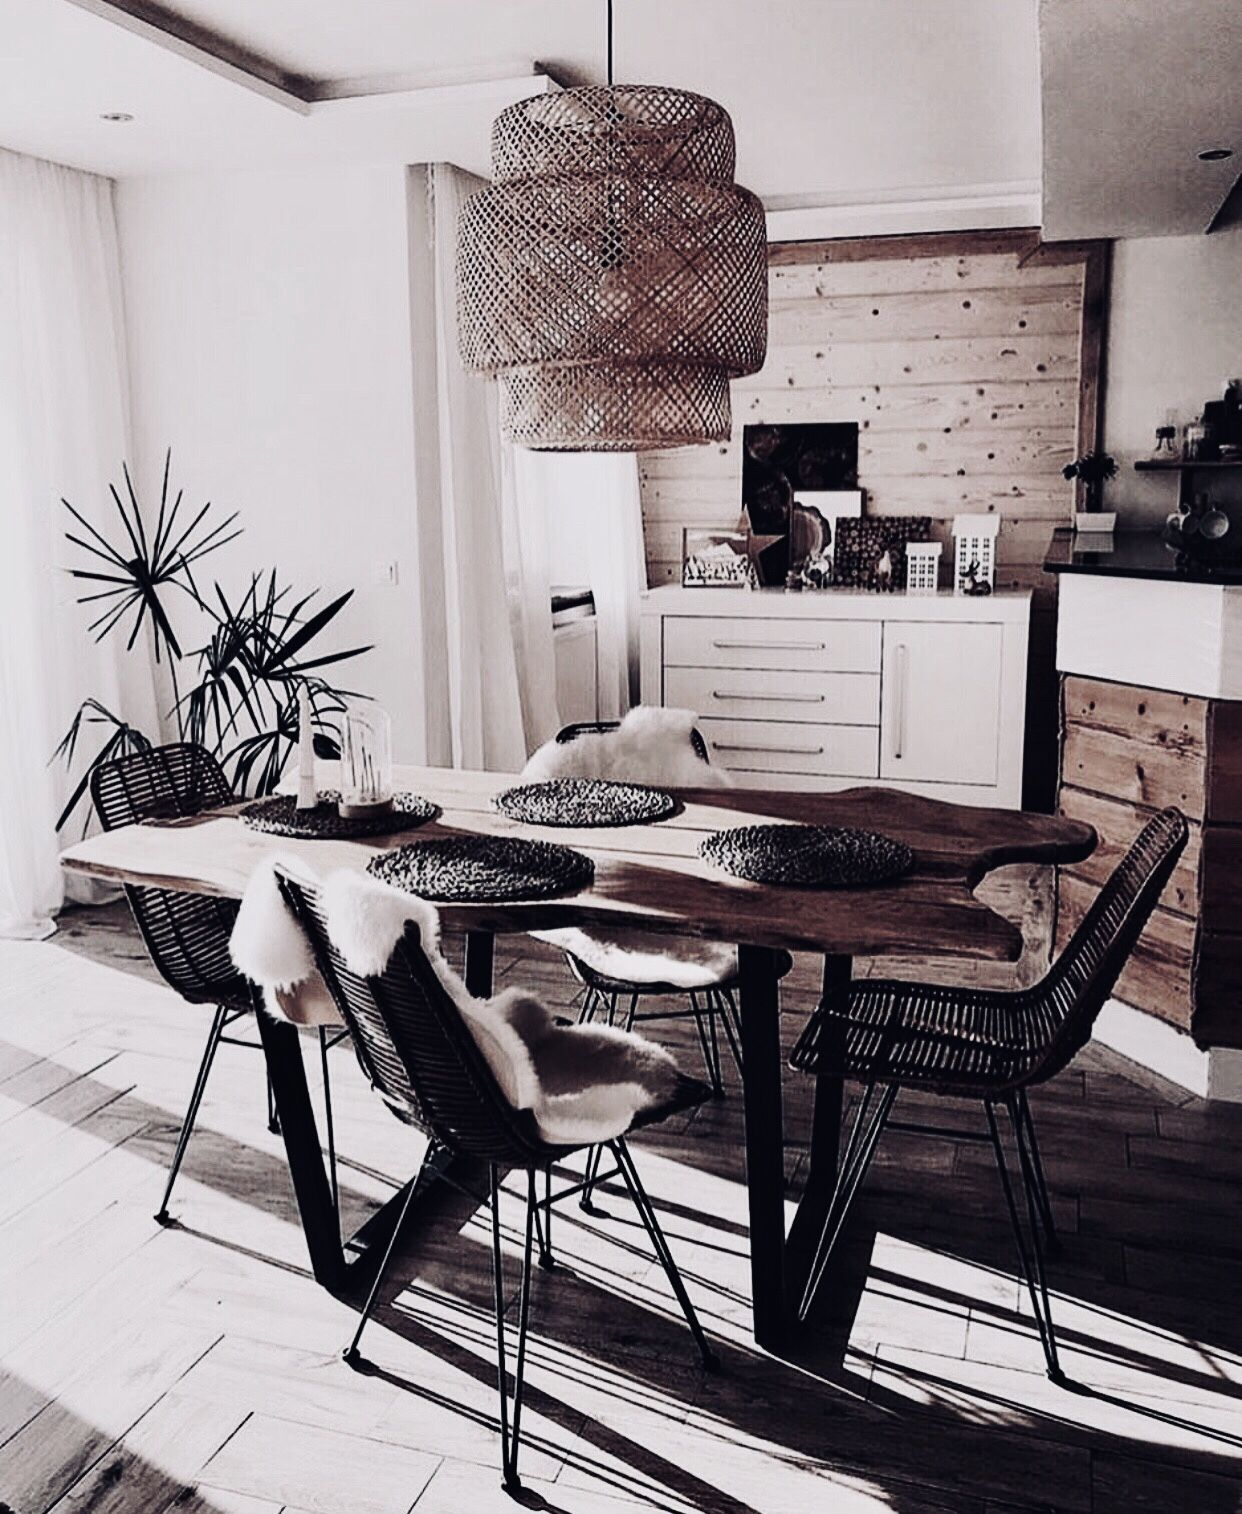 Pin By Lola Retrac On Ideas For The House